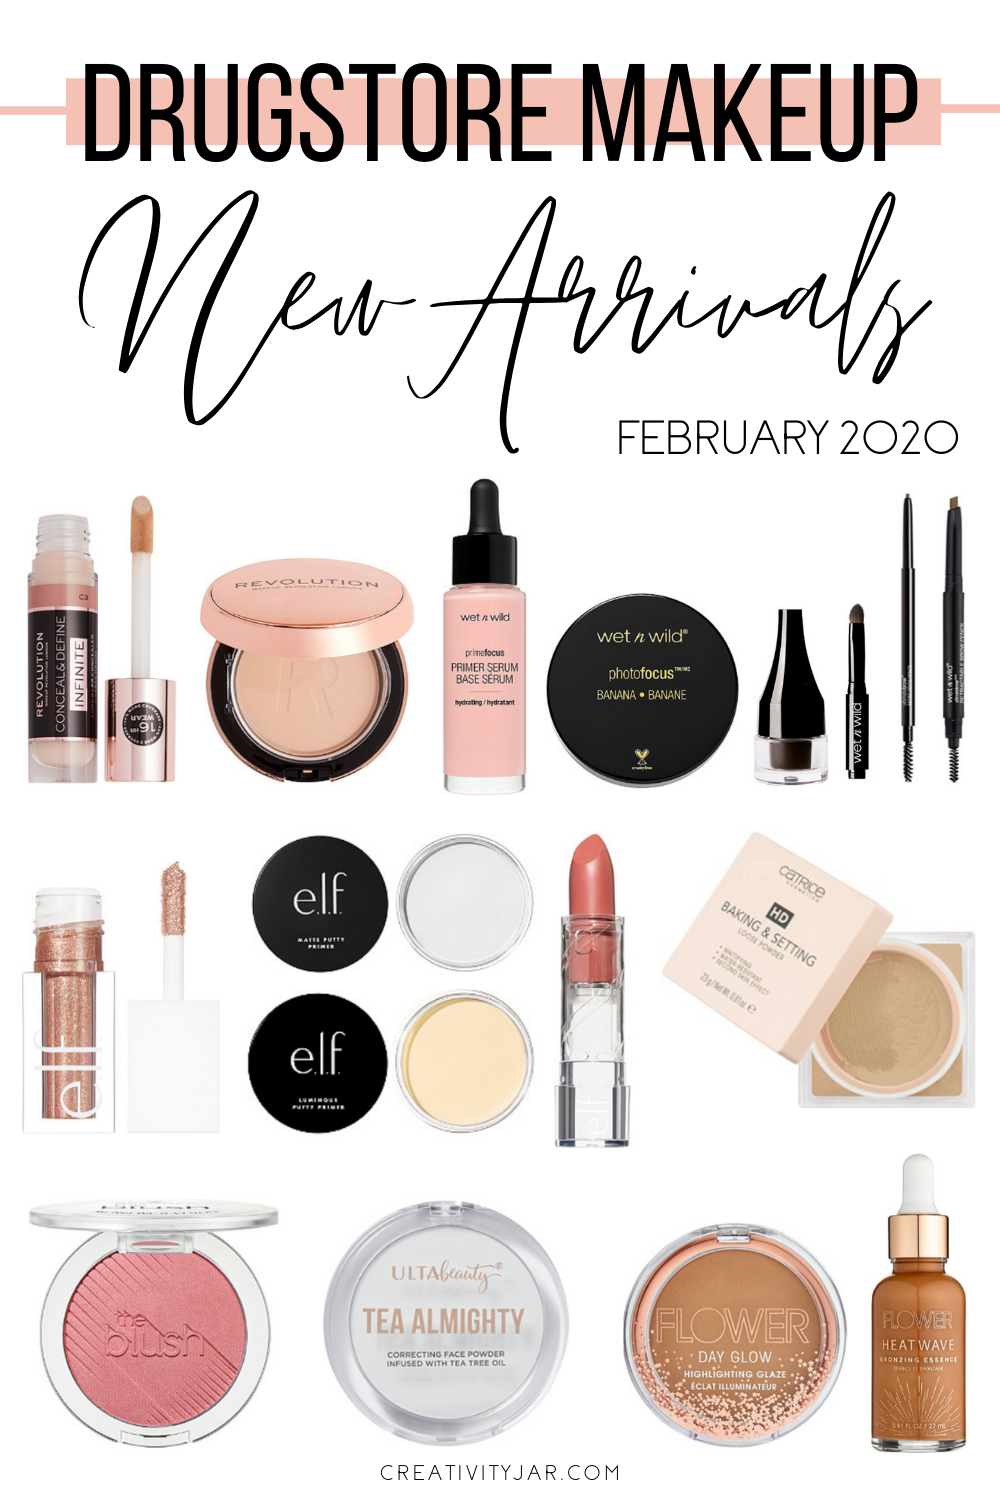 New Drugstore Makeup February 2020 Creativity Jar